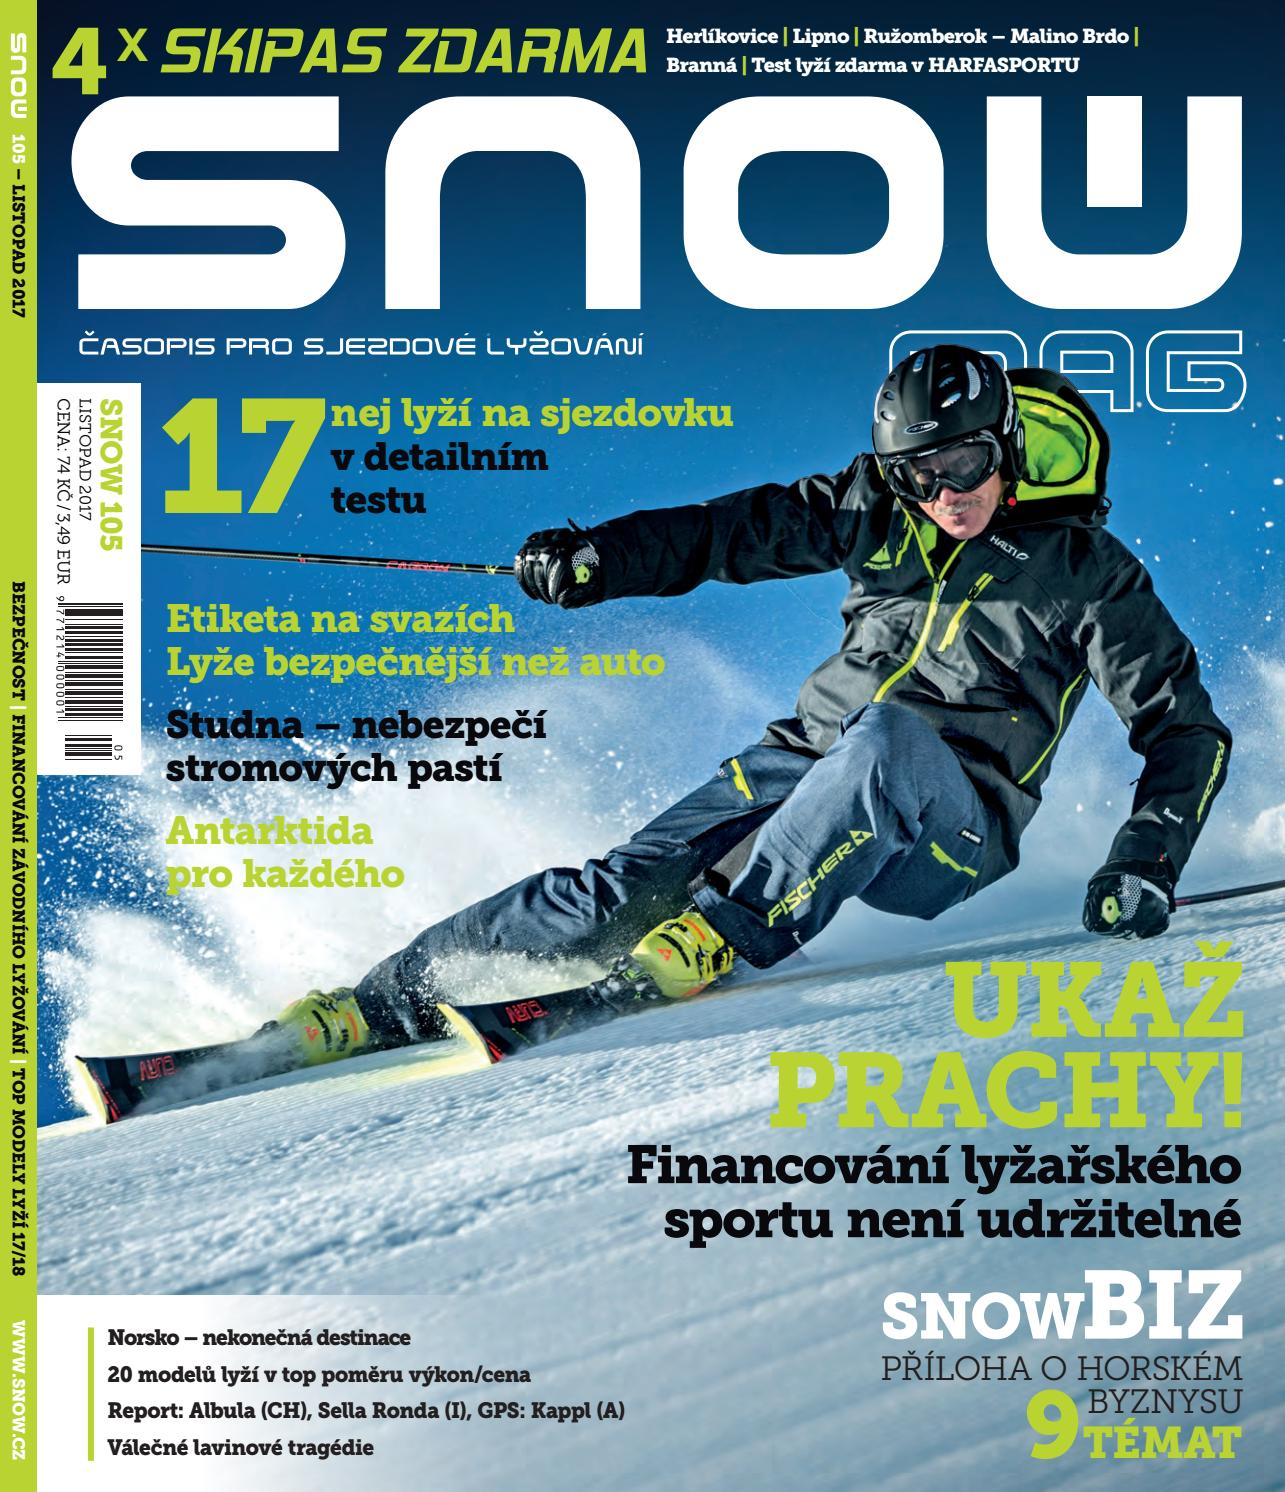 1d393b29e61 SNOW 105 - listopad 2017 by SNOW CZ s.r.o. - issuu